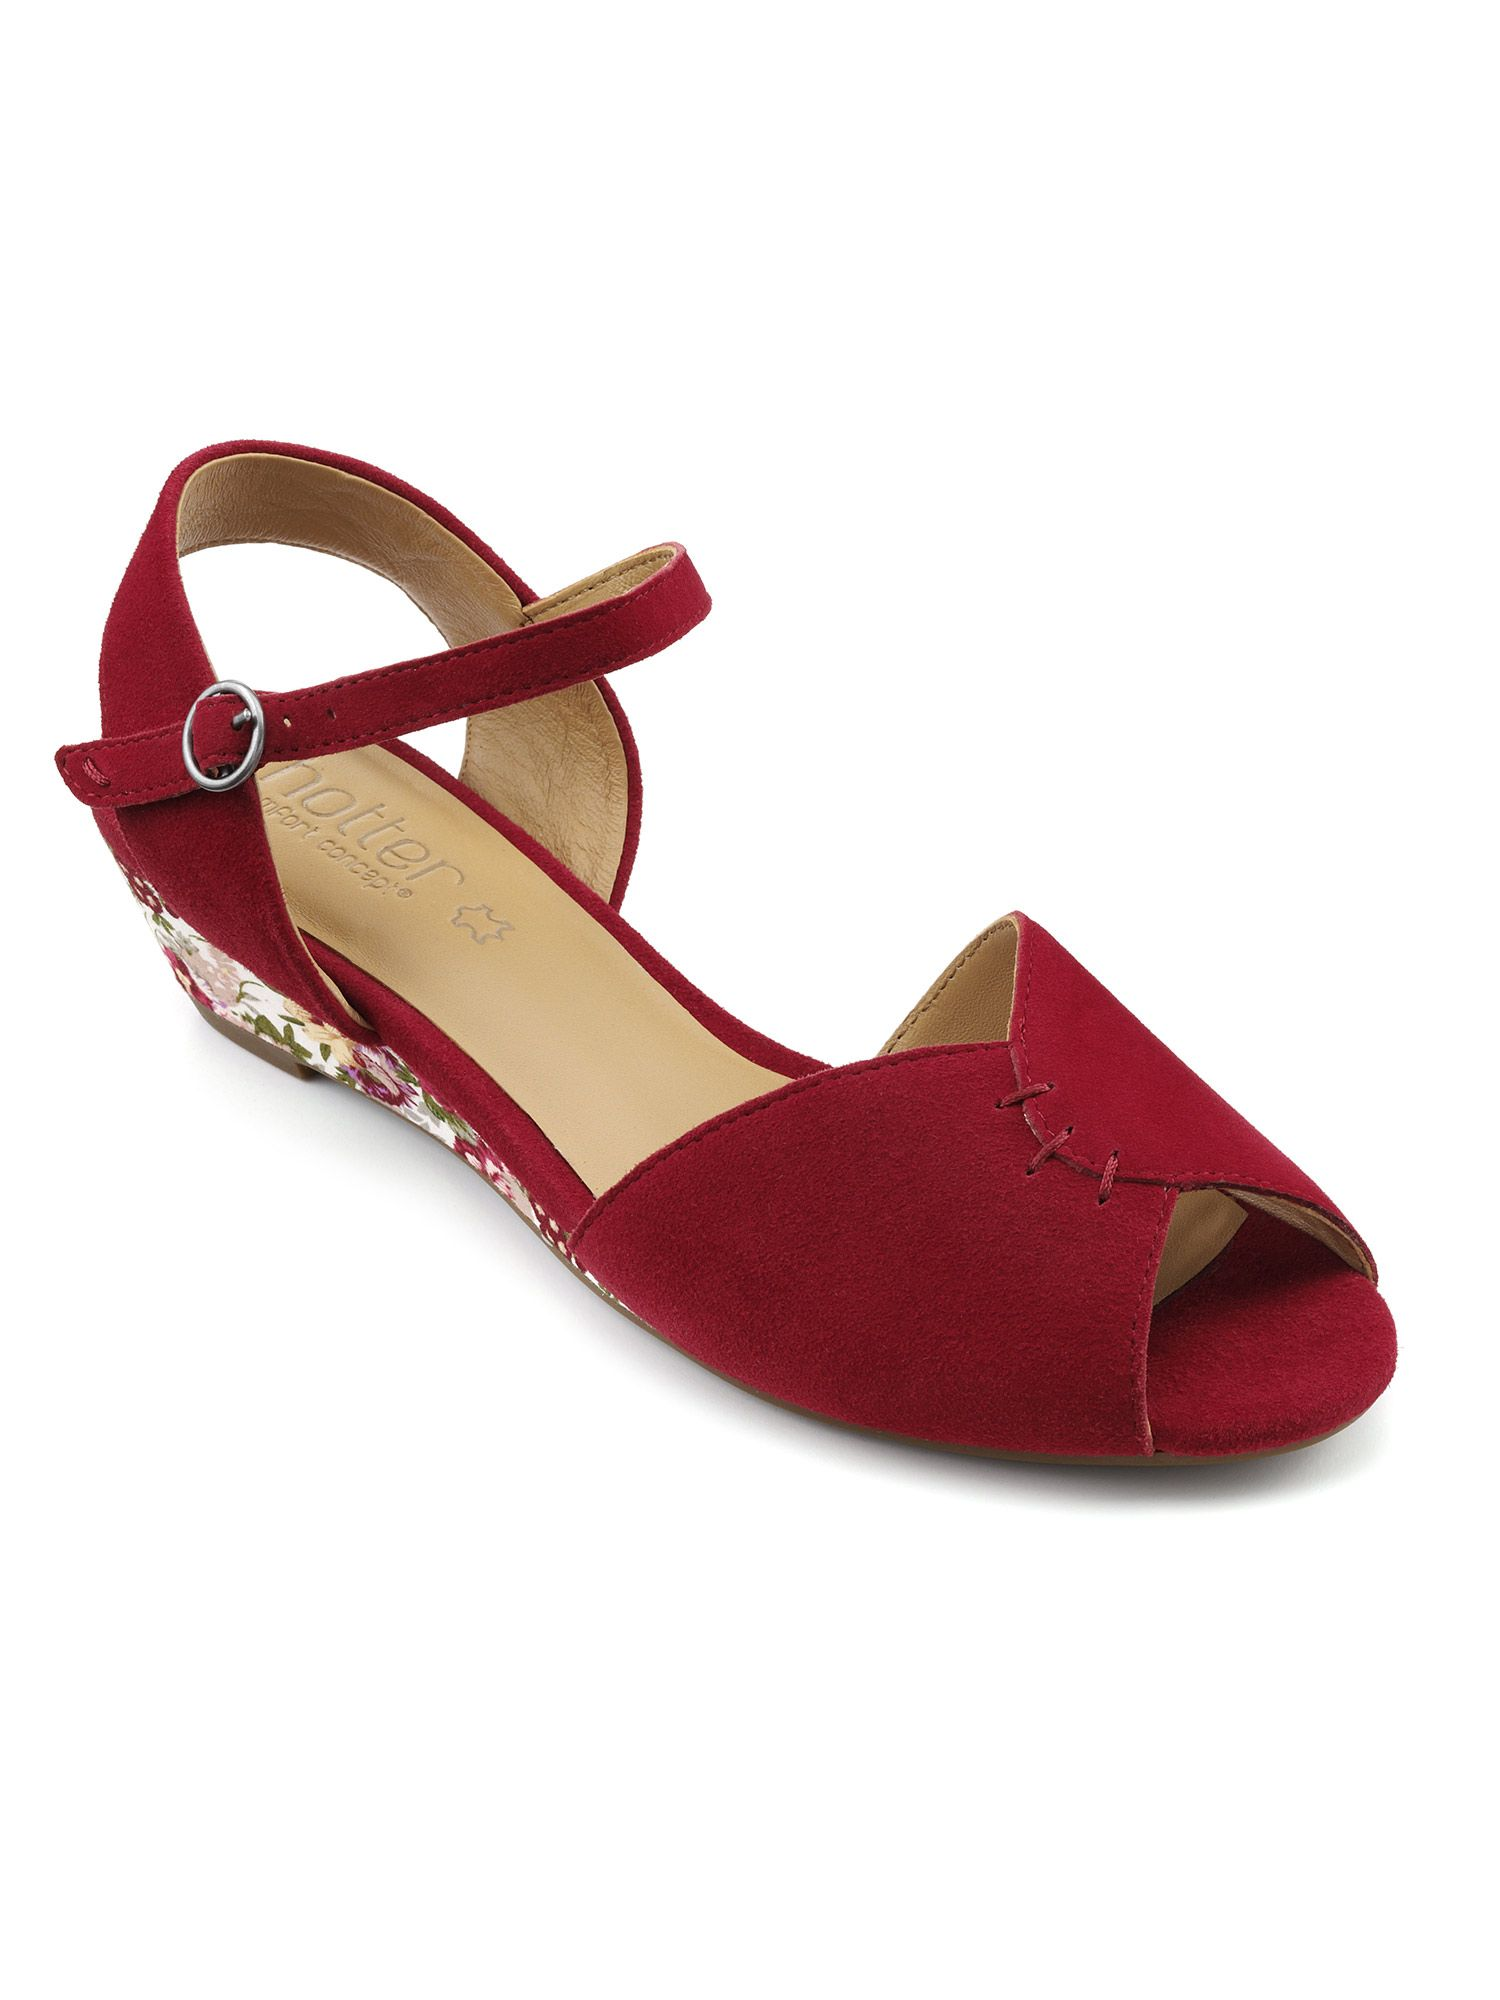 Hotter Hallie Low Wedged Heeled Sandal, Red